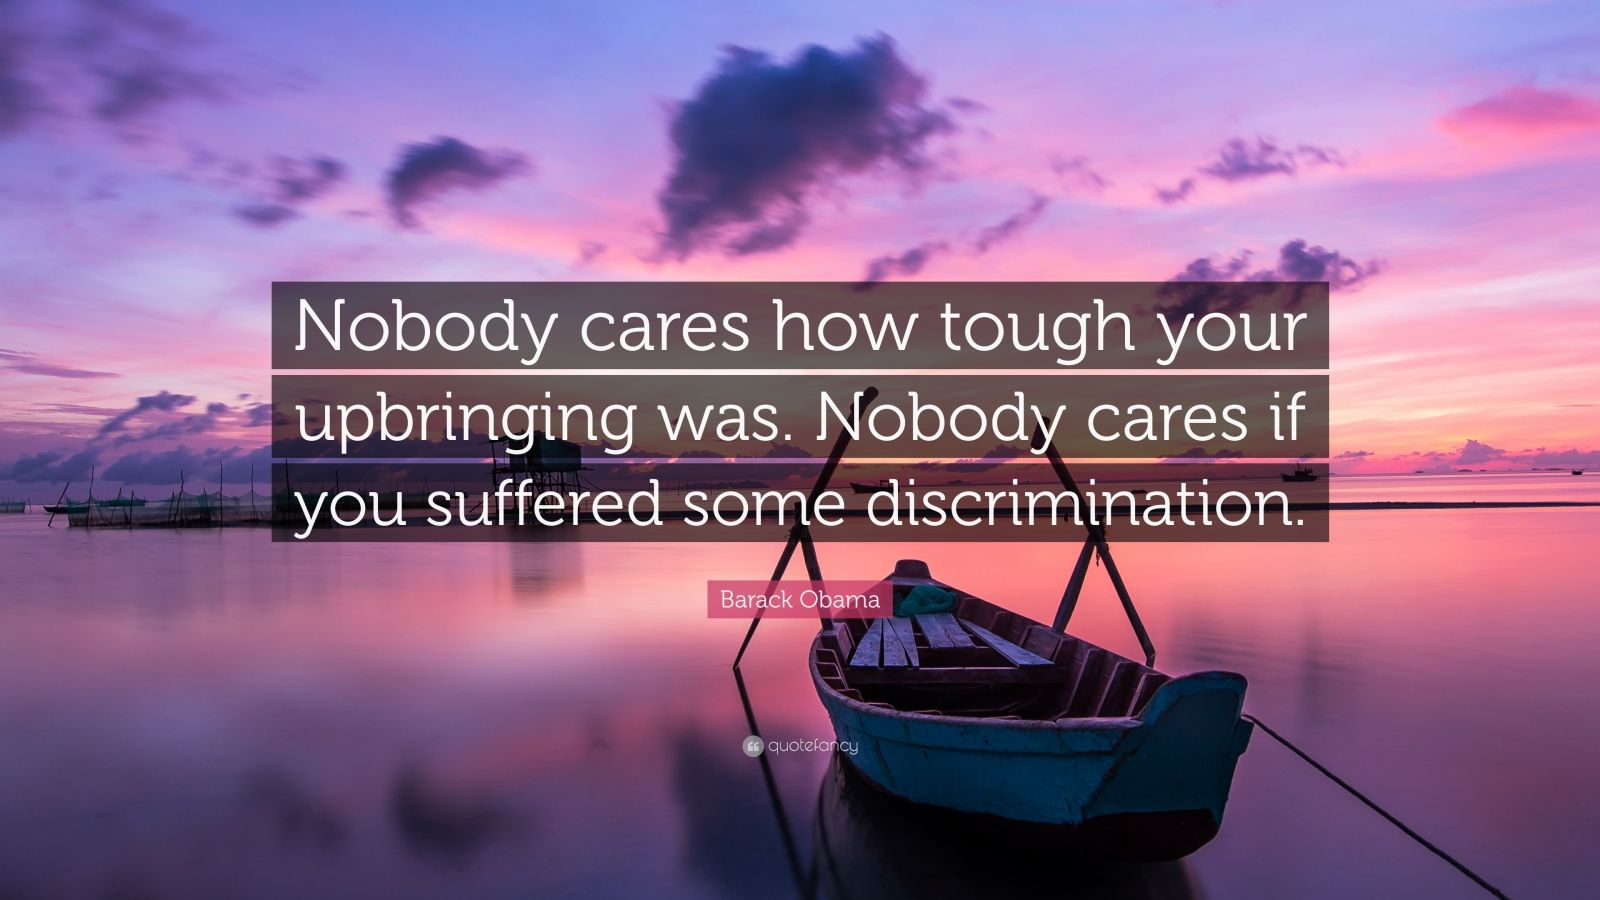 """Barack Obama Quote: """"Nobody cares how tough your upbringing was. Nobody cares if you suffered some discrimination."""""""